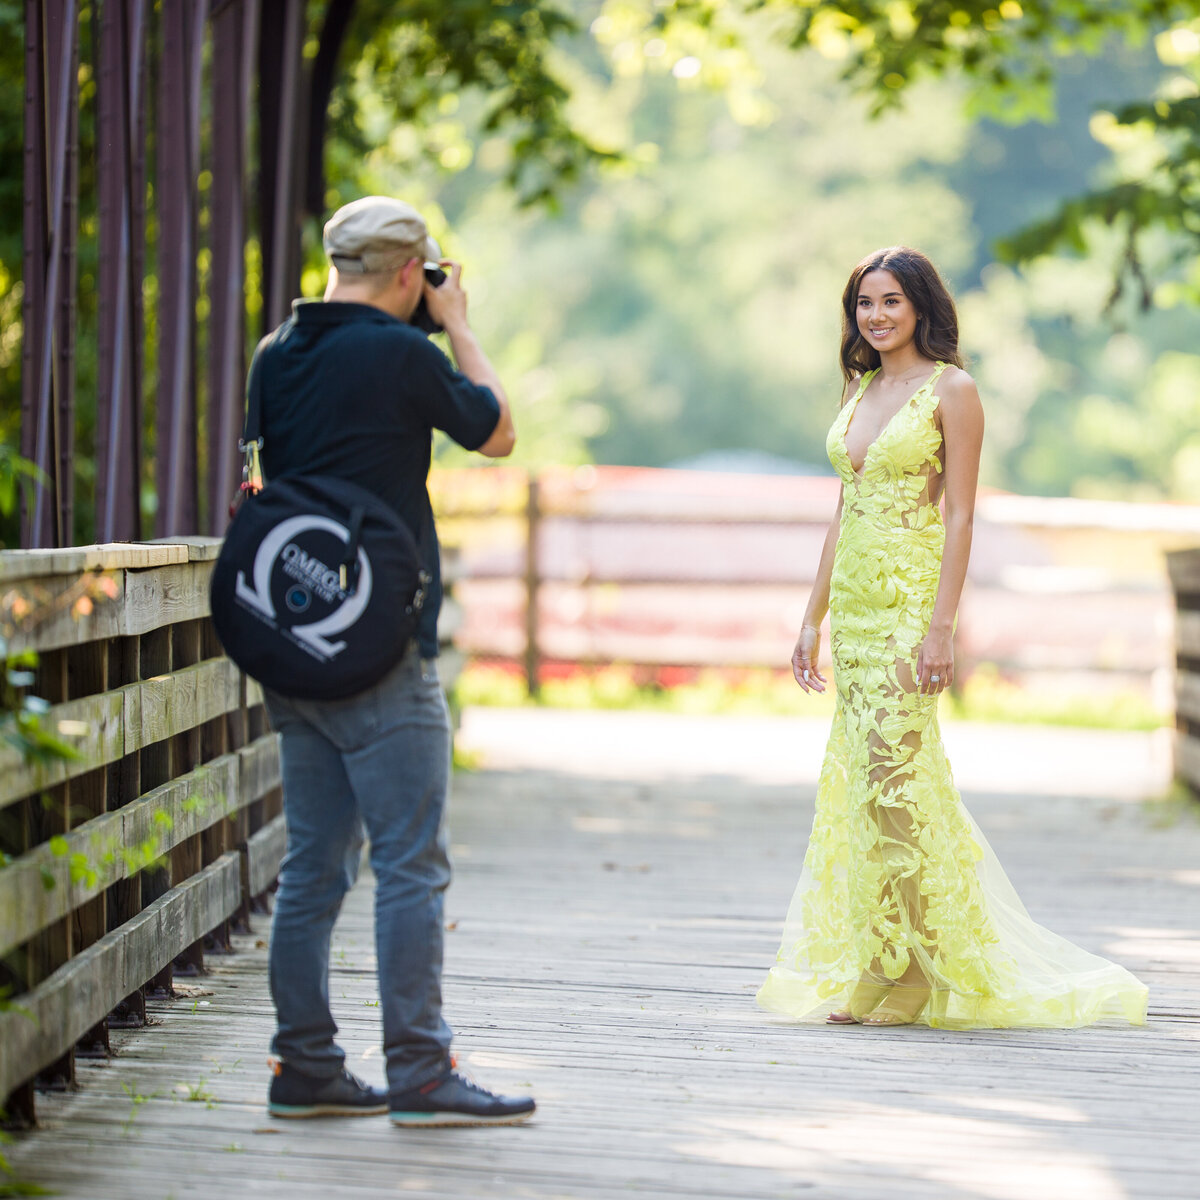 Behind the scenes in Phoenixville at a senior portrait session